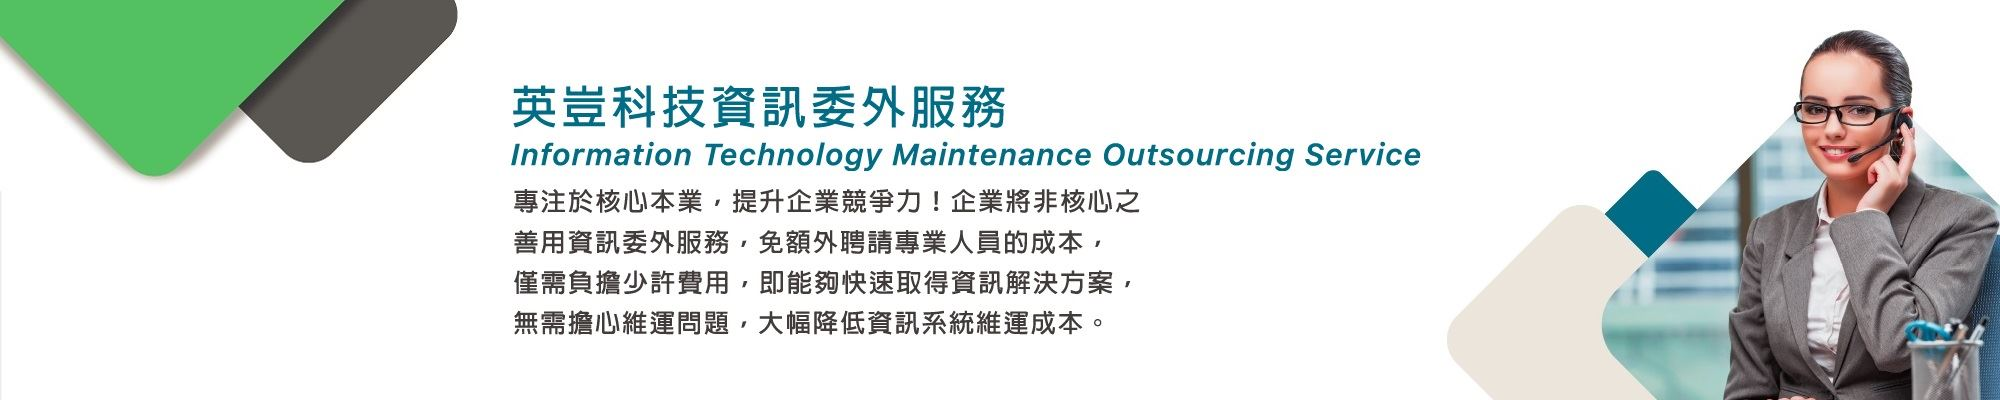 英豈科技資訊服務委外 / Information Service Outsourcing